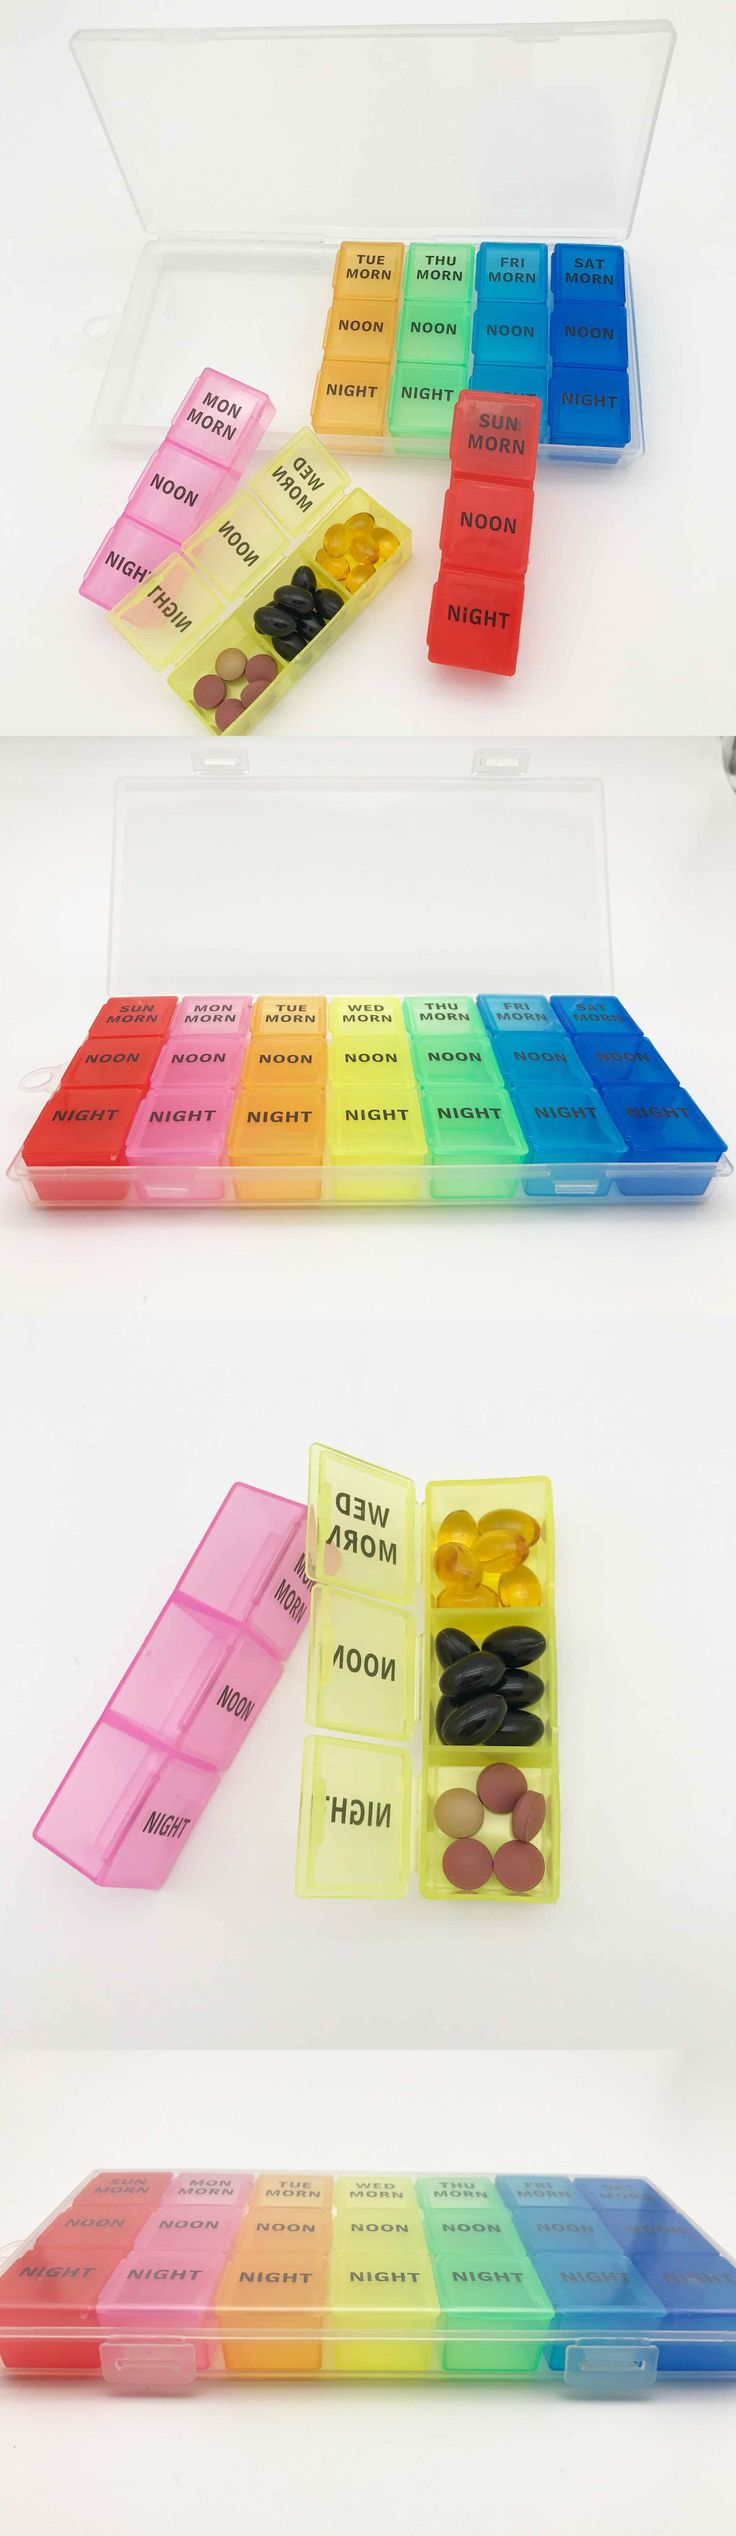 Pill Boxes Pill Cases: Pill Organizer Weekly 7 Day Am Pm Night Box Case Storage Container Planner Pl02 -> BUY IT NOW ONLY: $99.99 on eBay!